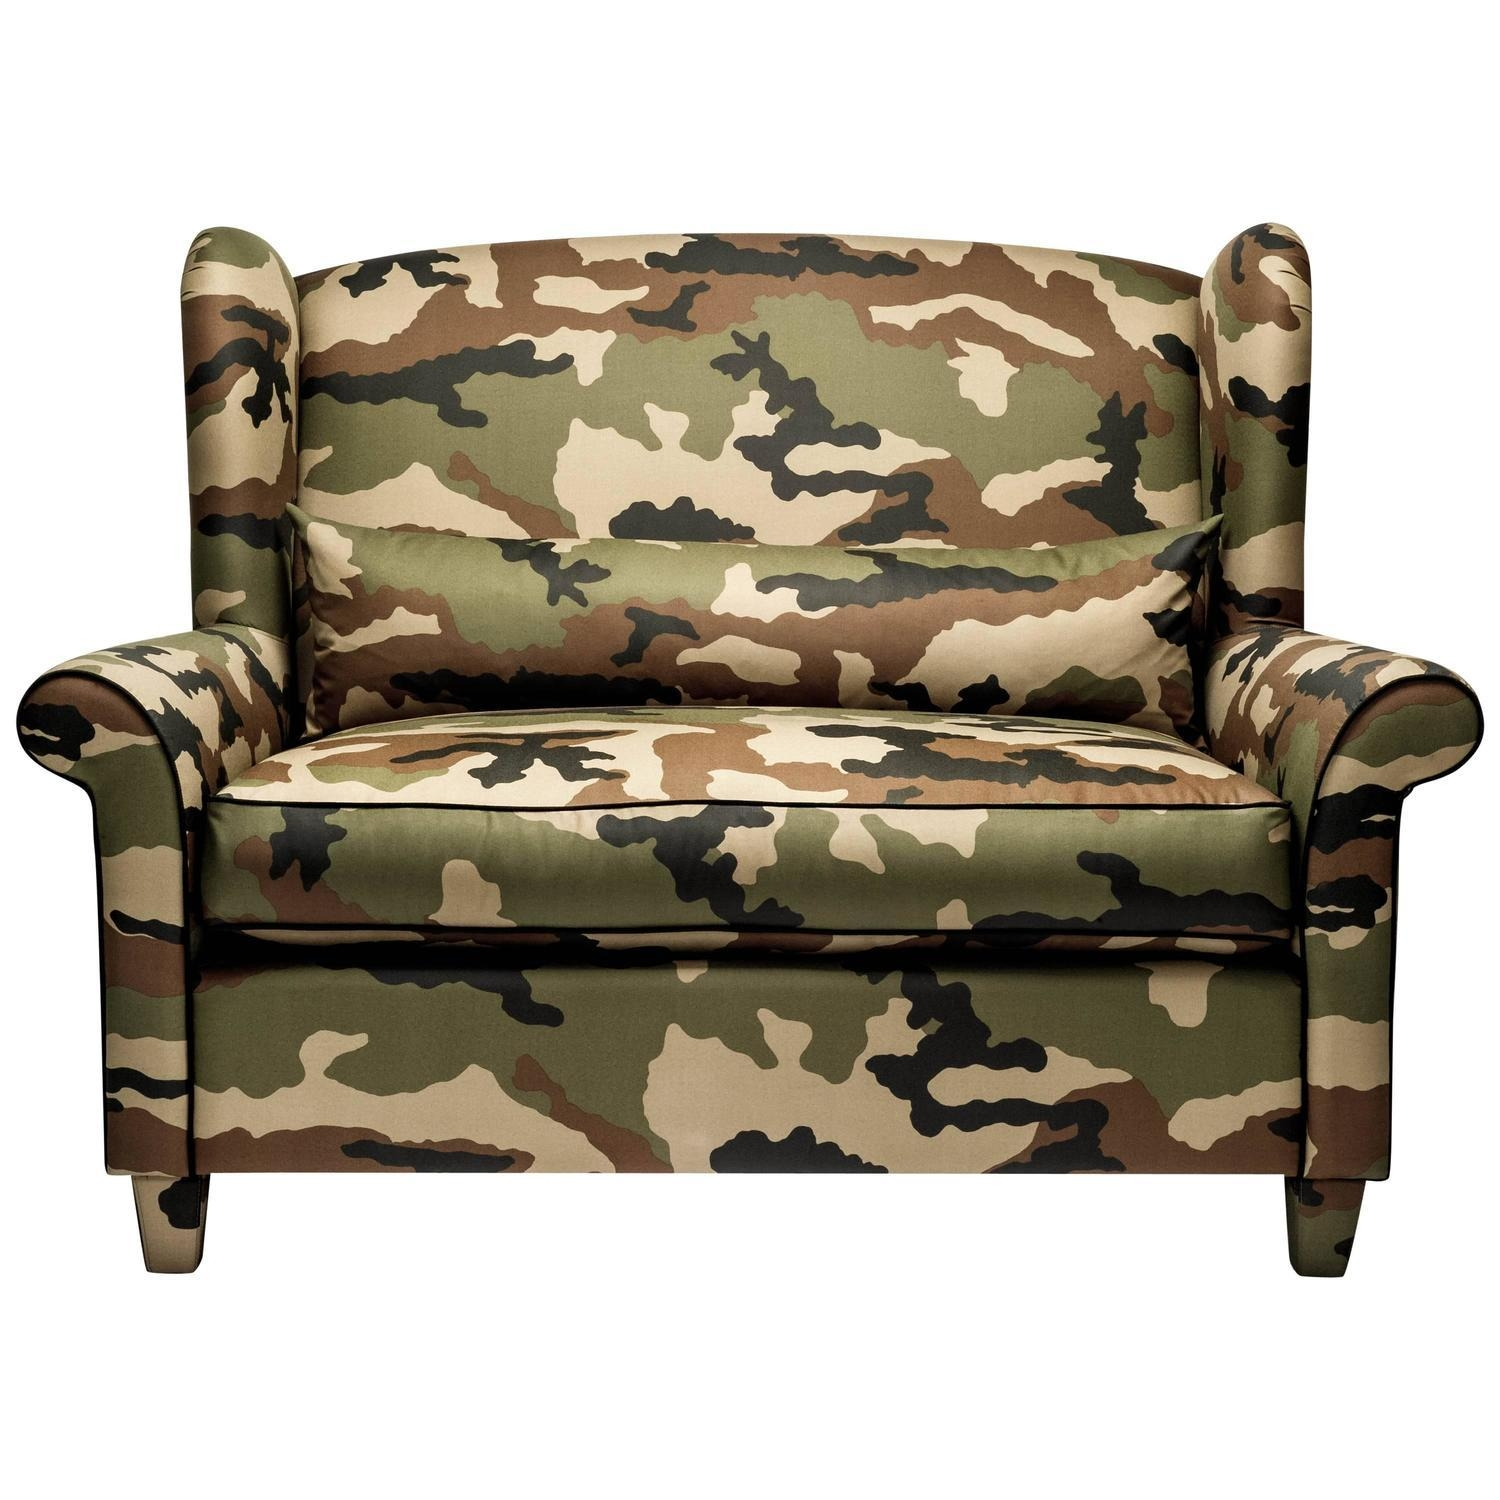 Furniture: Unique Pattern Sofa Decor Ideas With Camouflage Pertaining To Camo Reclining Sofas (Image 16 of 20)